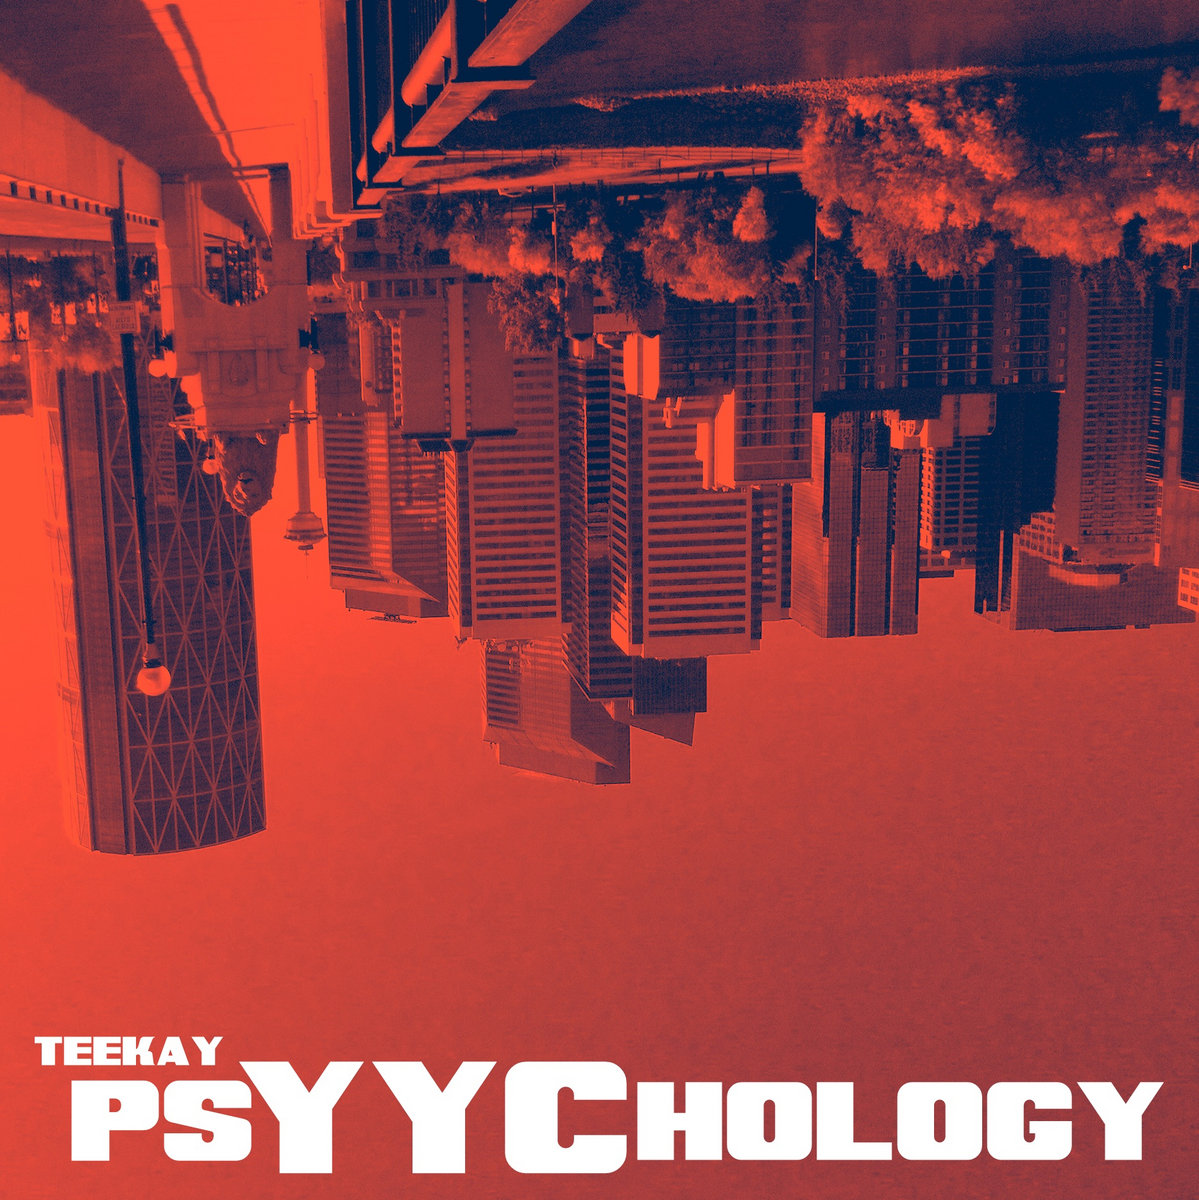 Teekay-Psyychology-2013-FTD Download